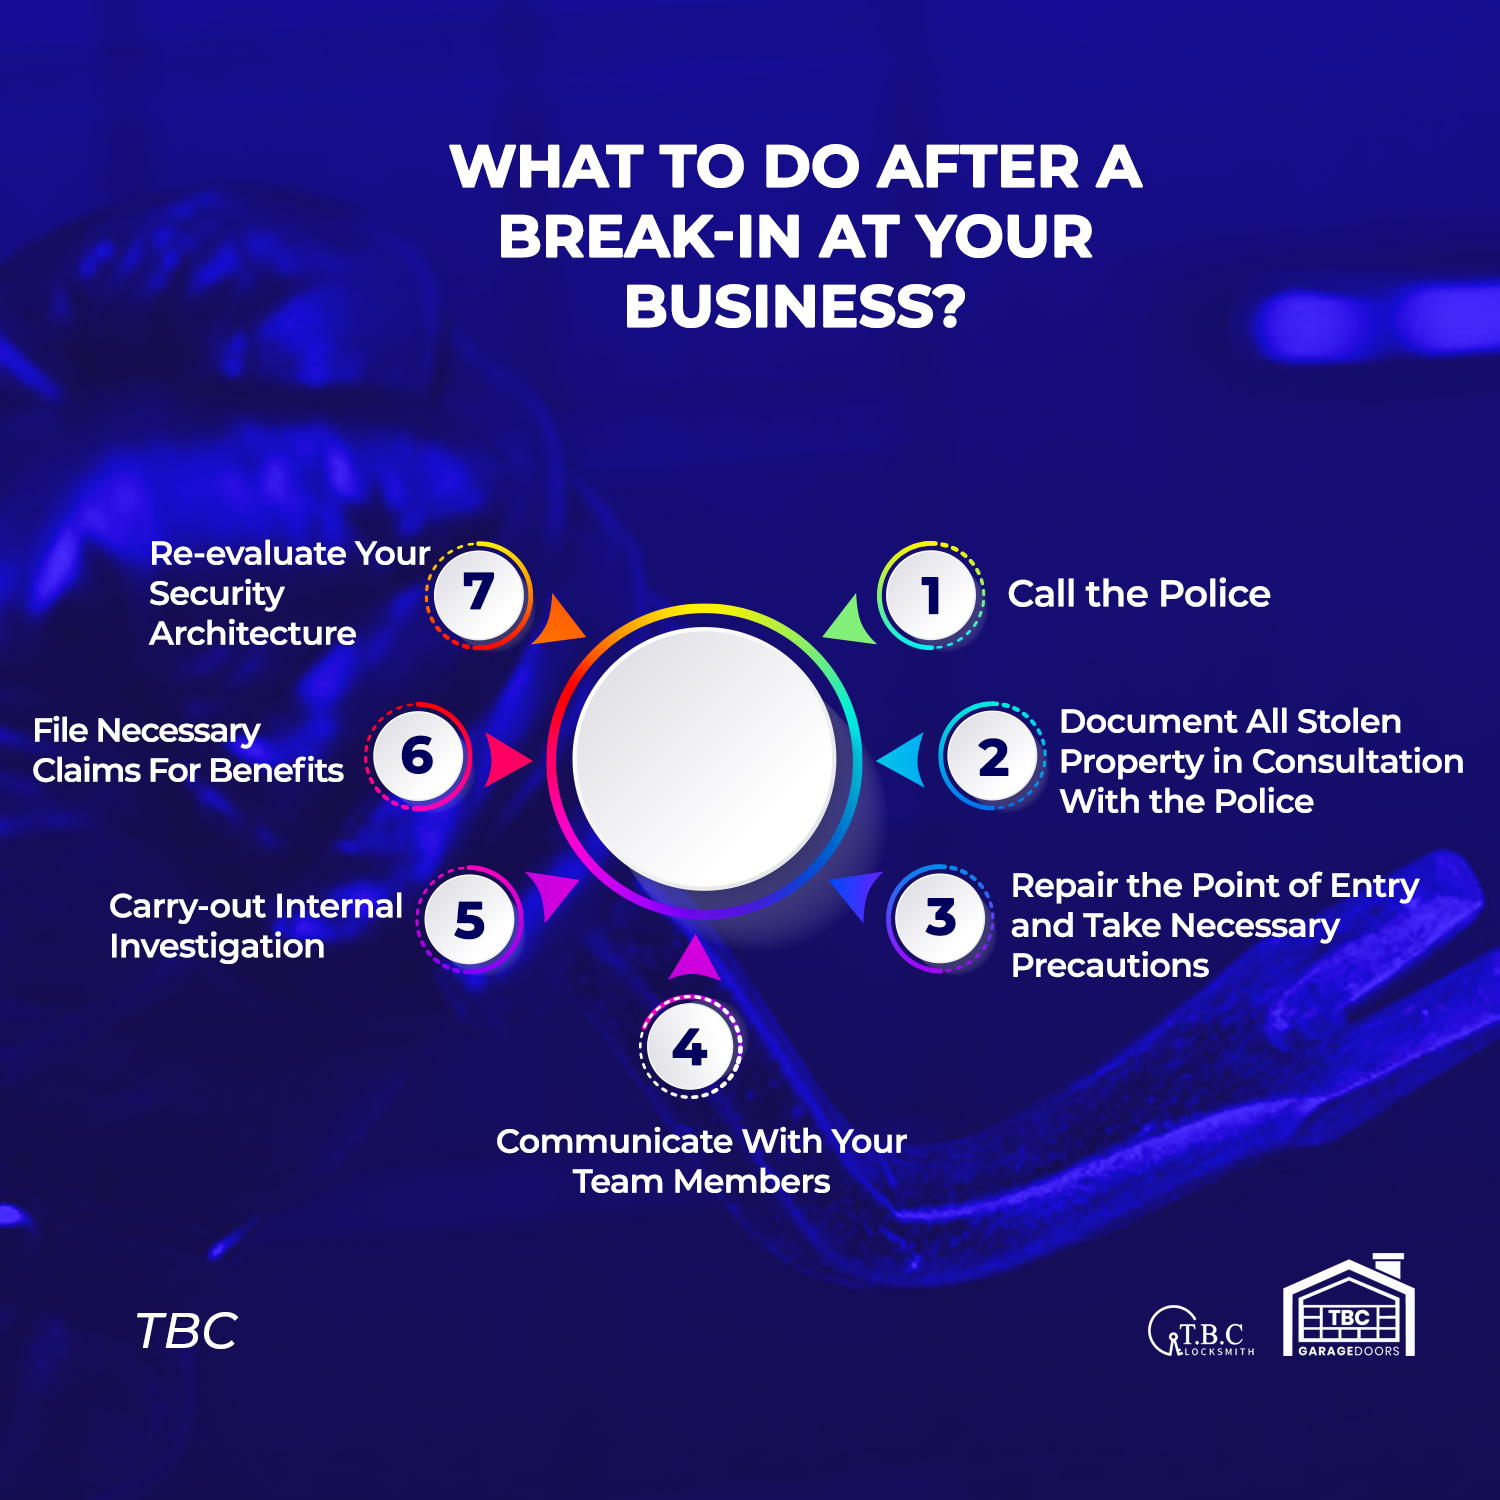 What to Do After a Break-in at Your Business